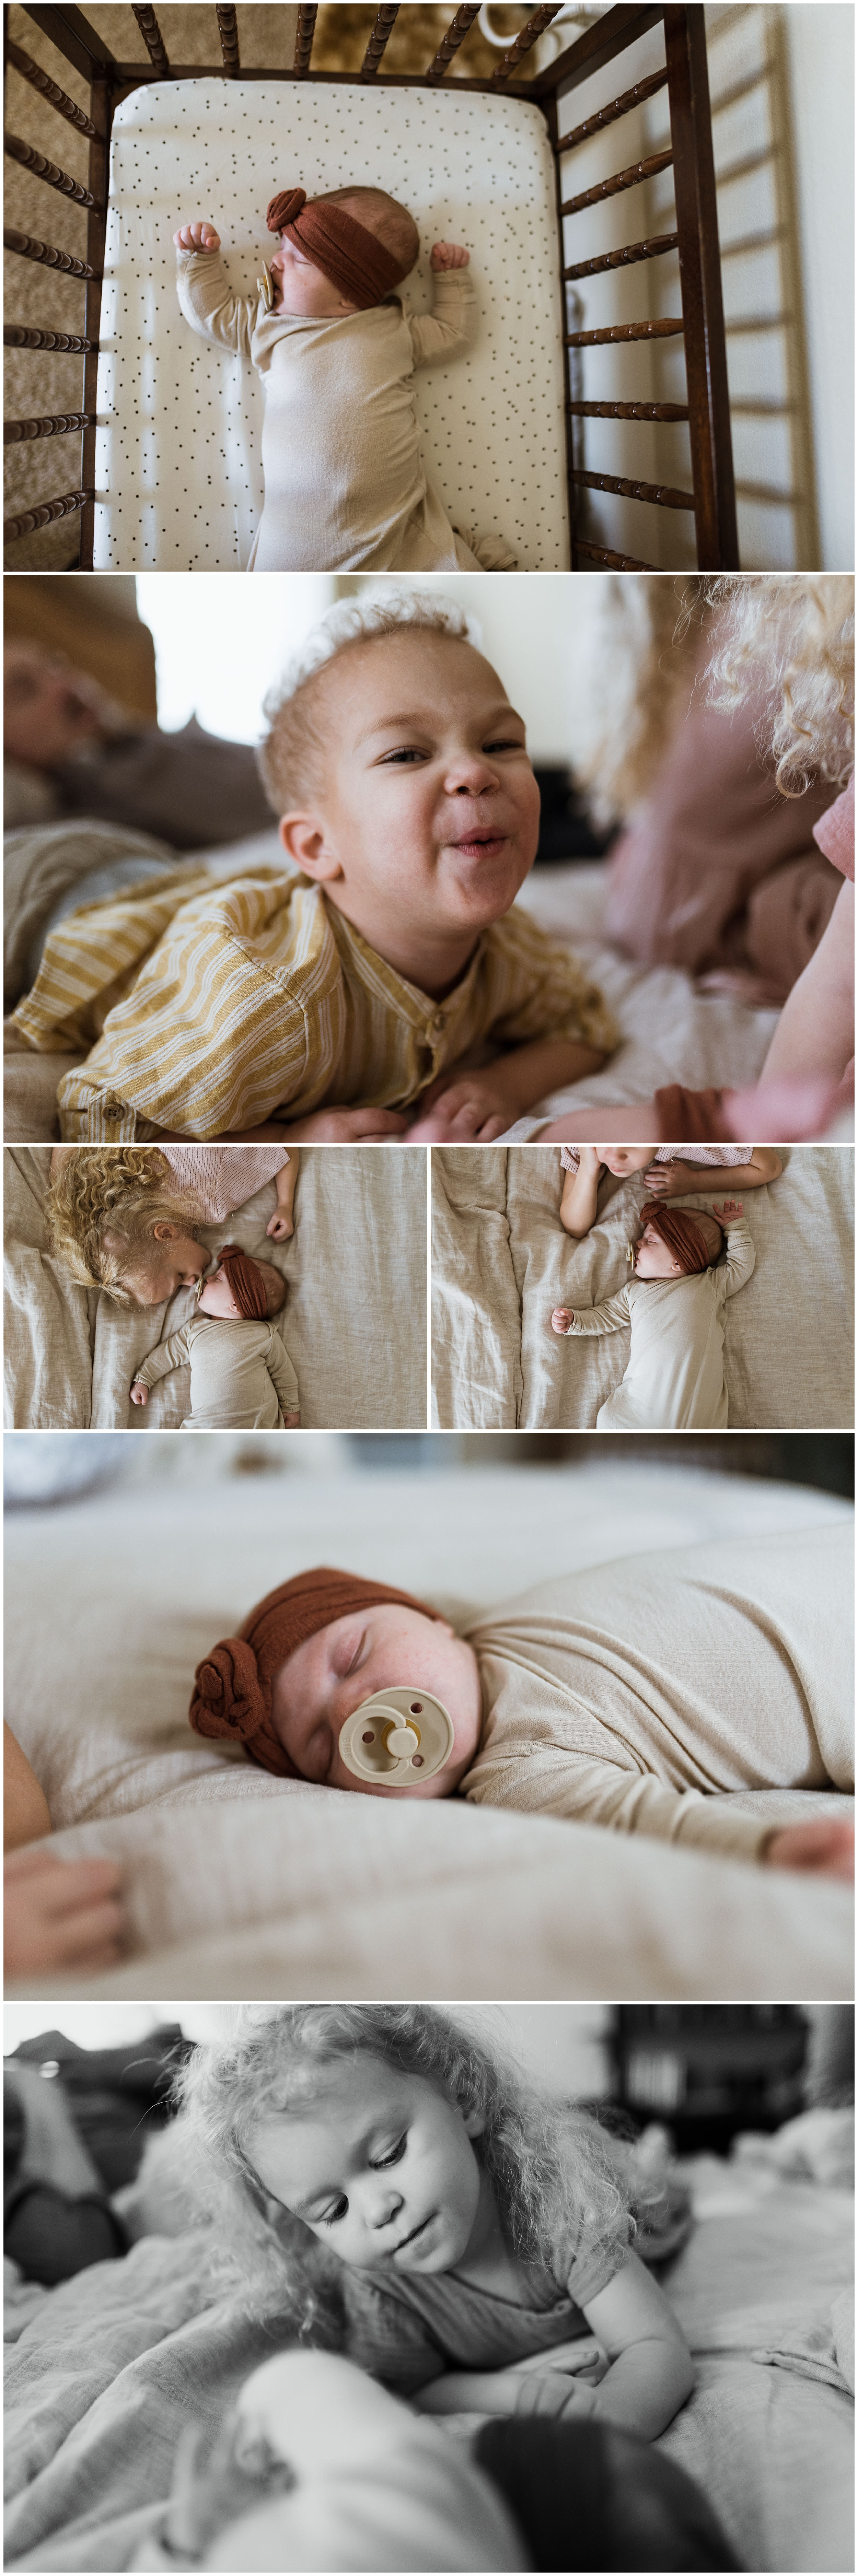 Fort Worth Lifestyle Newborn session | Fort Worth lifestyle photographer | www.jordanmitchellphotography.com